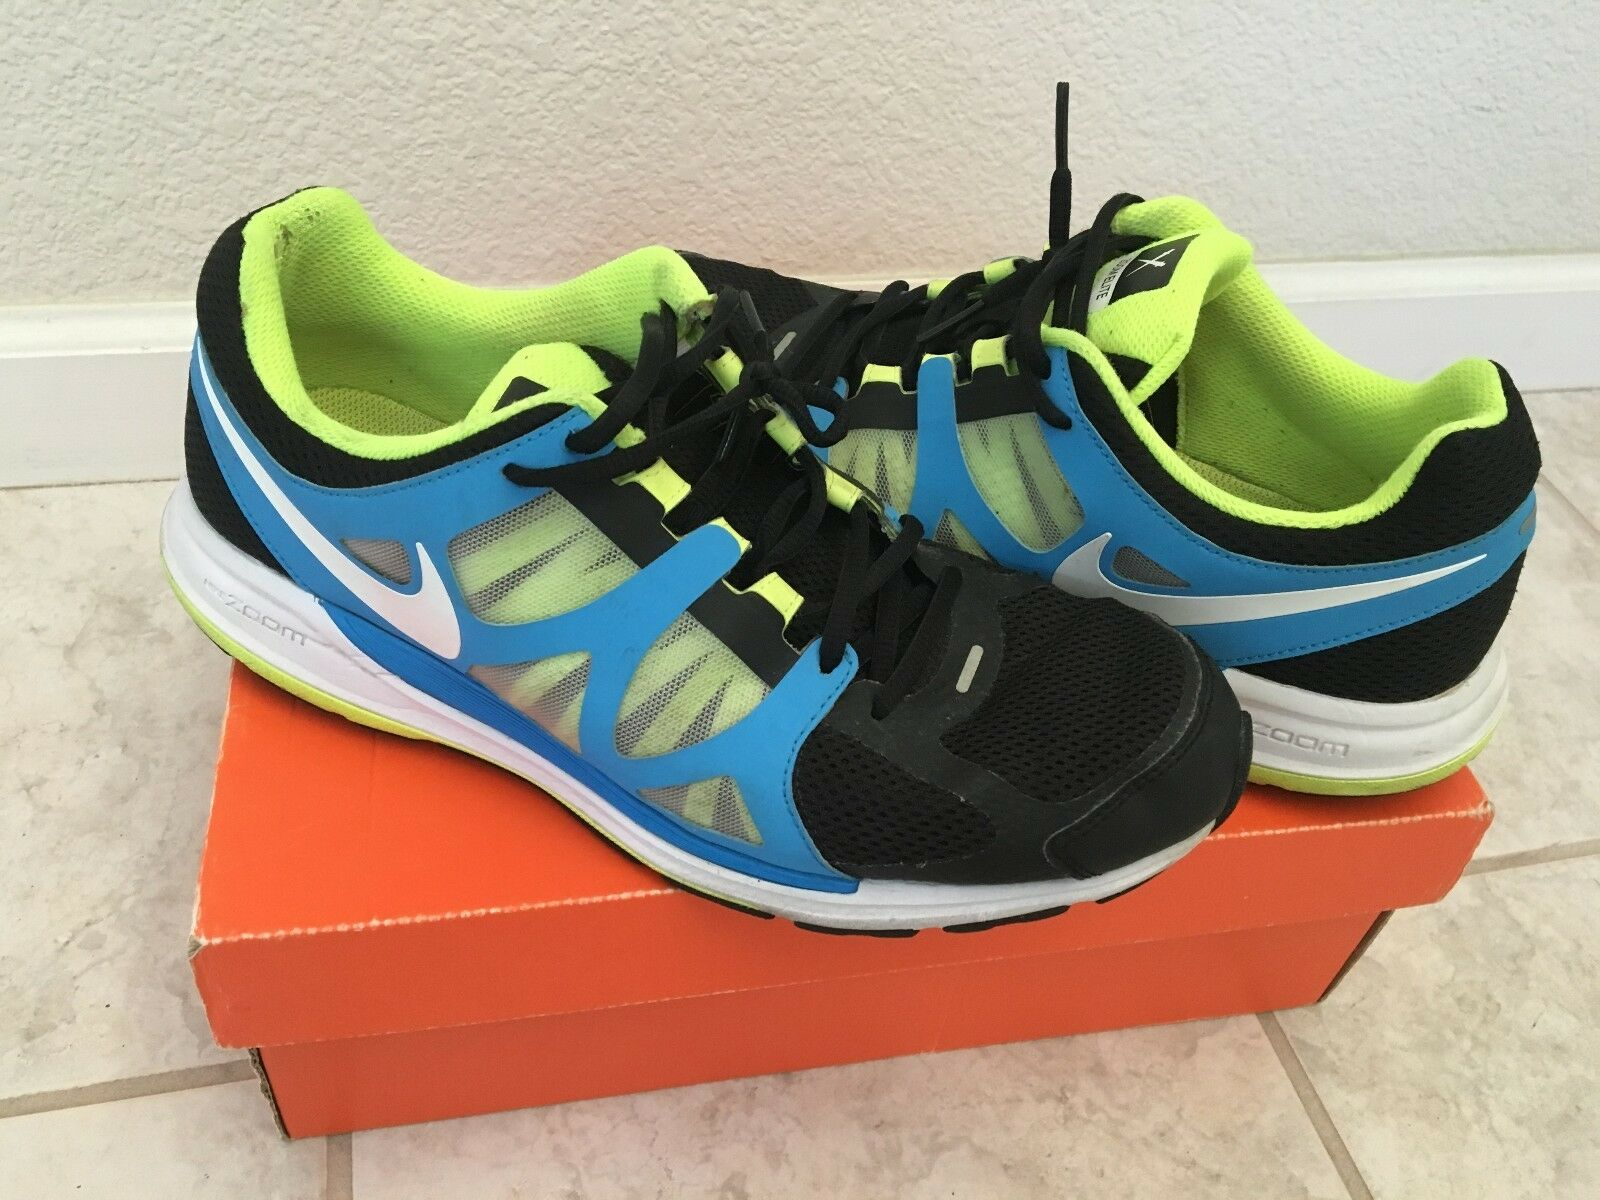 Nike Zoom Elite + Running Men Shoes Size 10 with Box